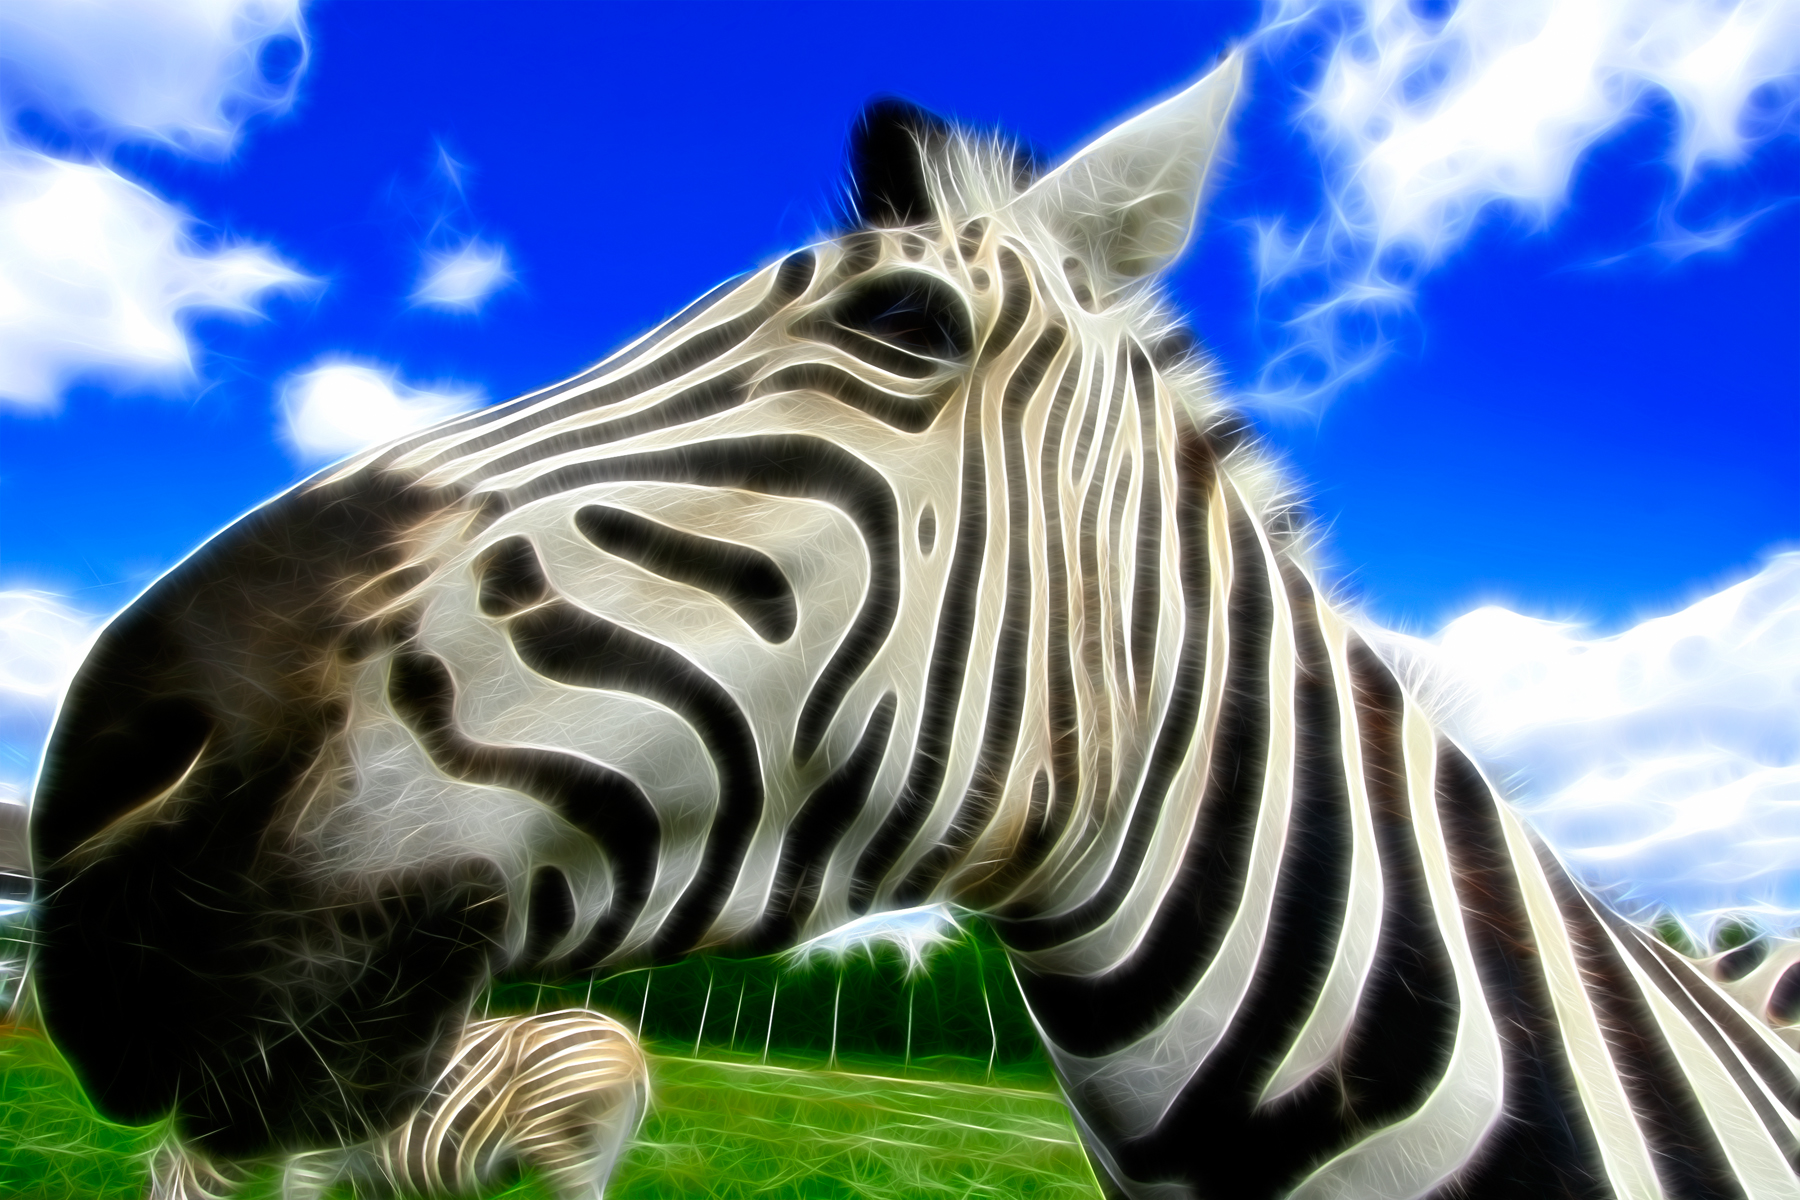 Wide-angle zebra photo